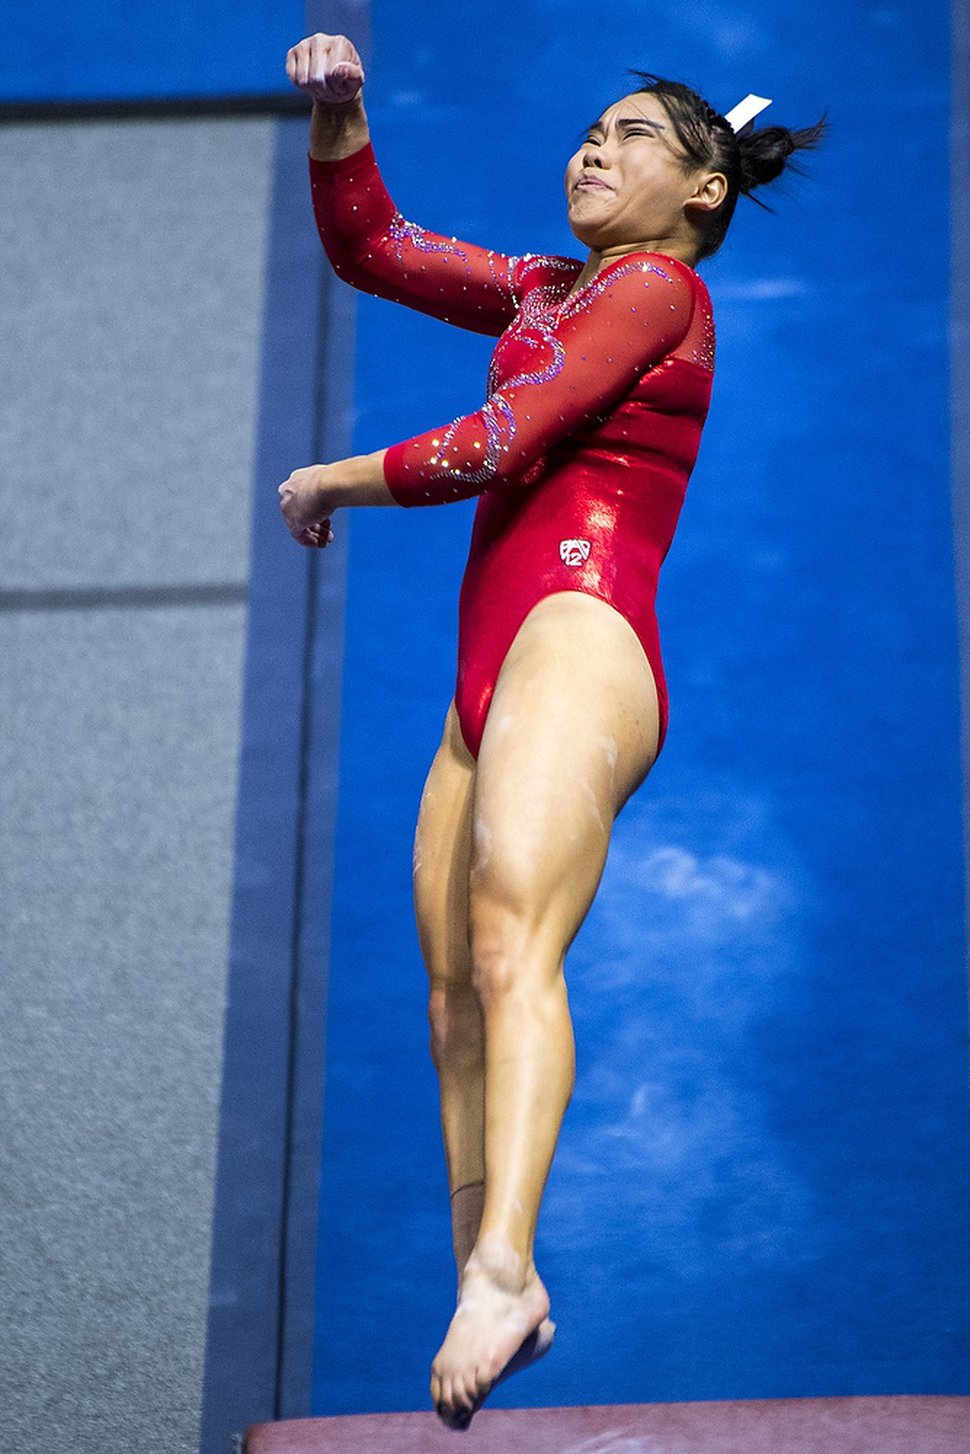 (Chris Detrick | The Salt Lake Tribune) Utah's Kim Tessen competes on the vault during the gymnastics meet against Brigham Young University Friday, January 5, 2018.